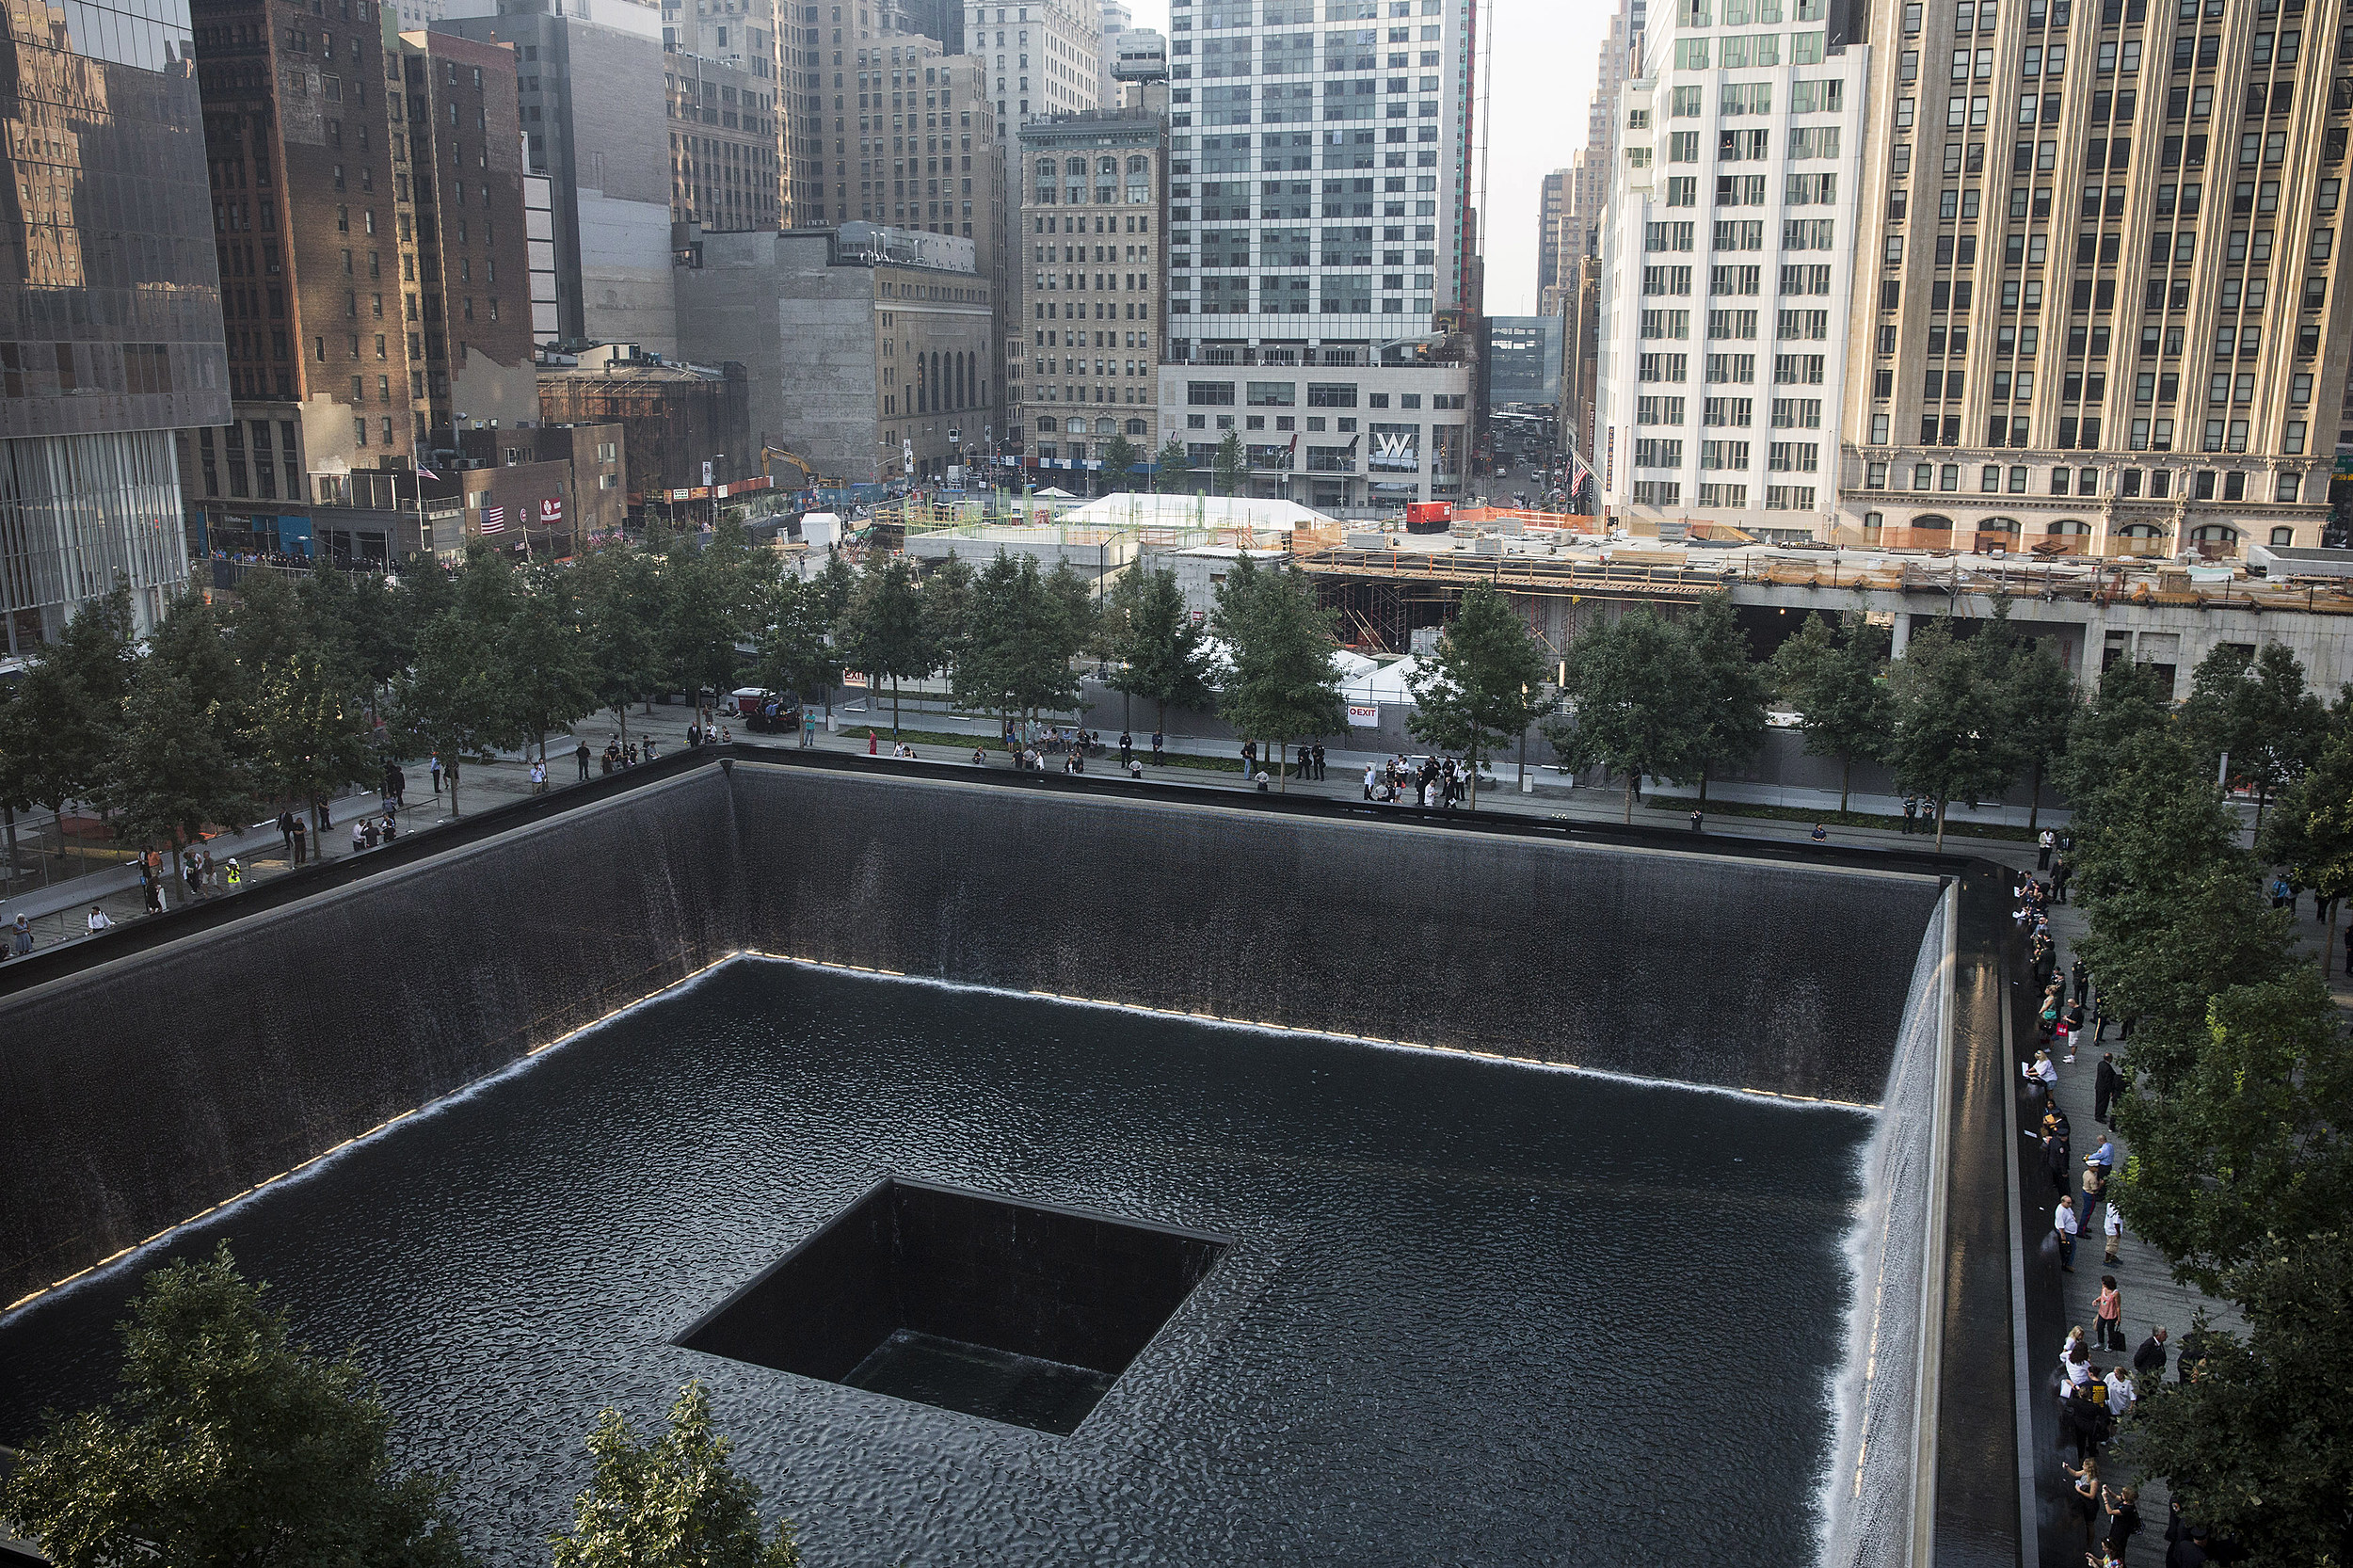 New York Commemorates The 12th Anniversary Of The September 11 Terror Attacks (Getty Images)